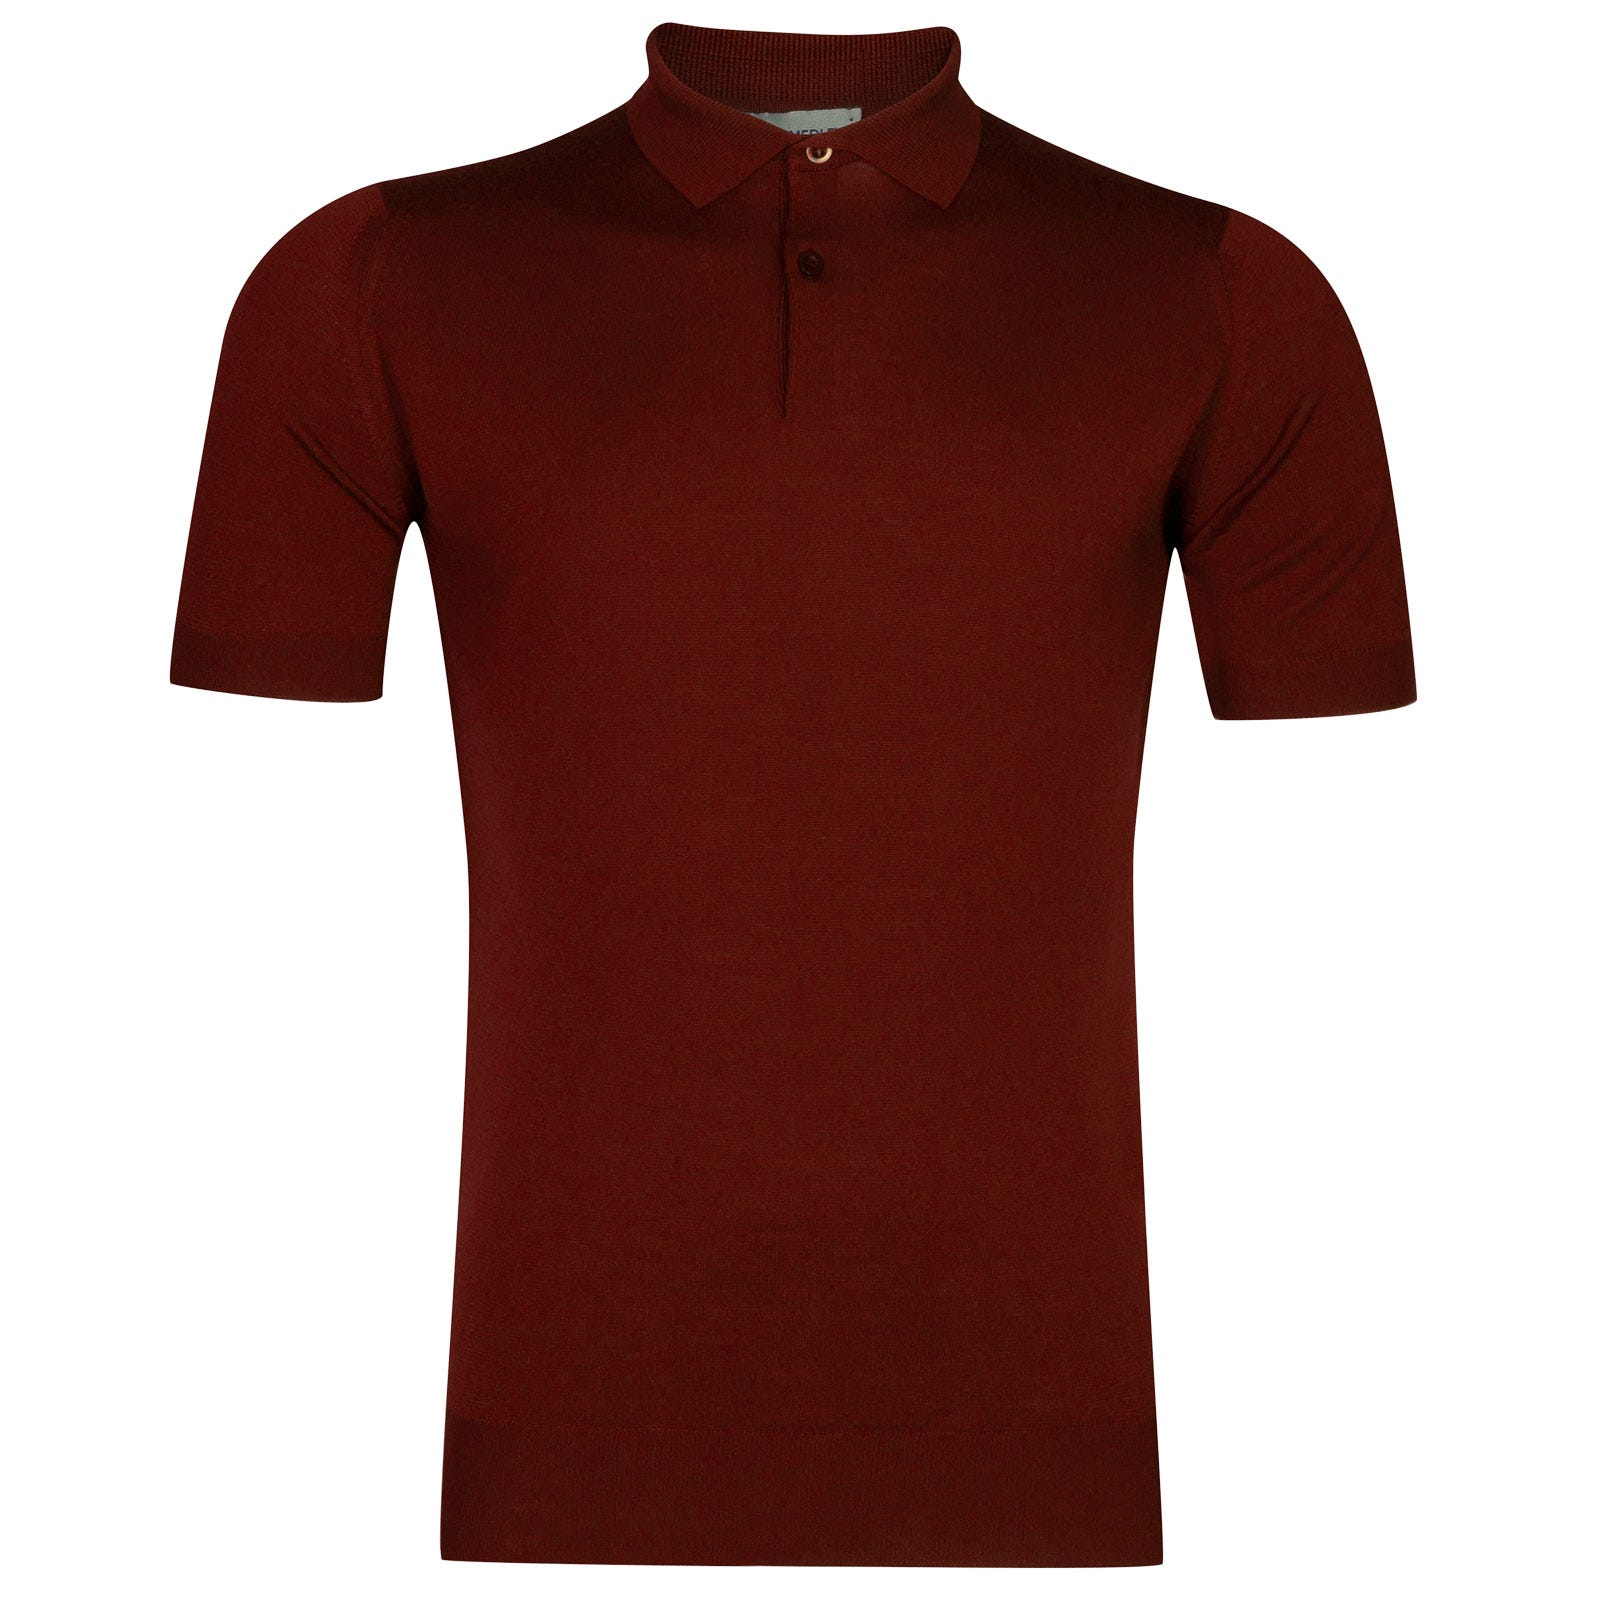 John Smedley payton Merino Wool Shirt in Crimson Forest-XXL